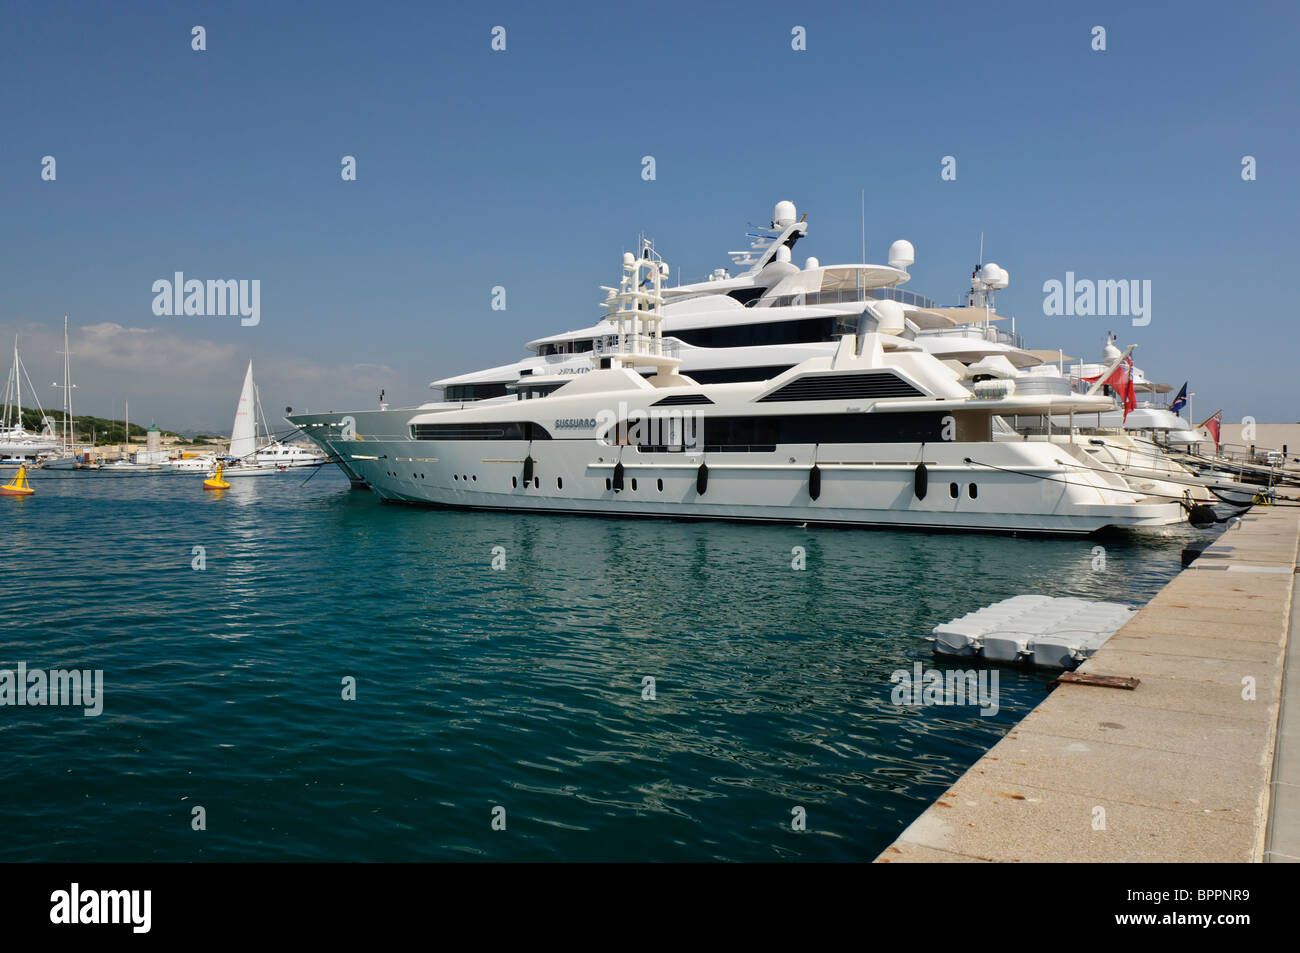 Superyacht 'Sussurro' moored at the marina in Antibes, France - Stock Image